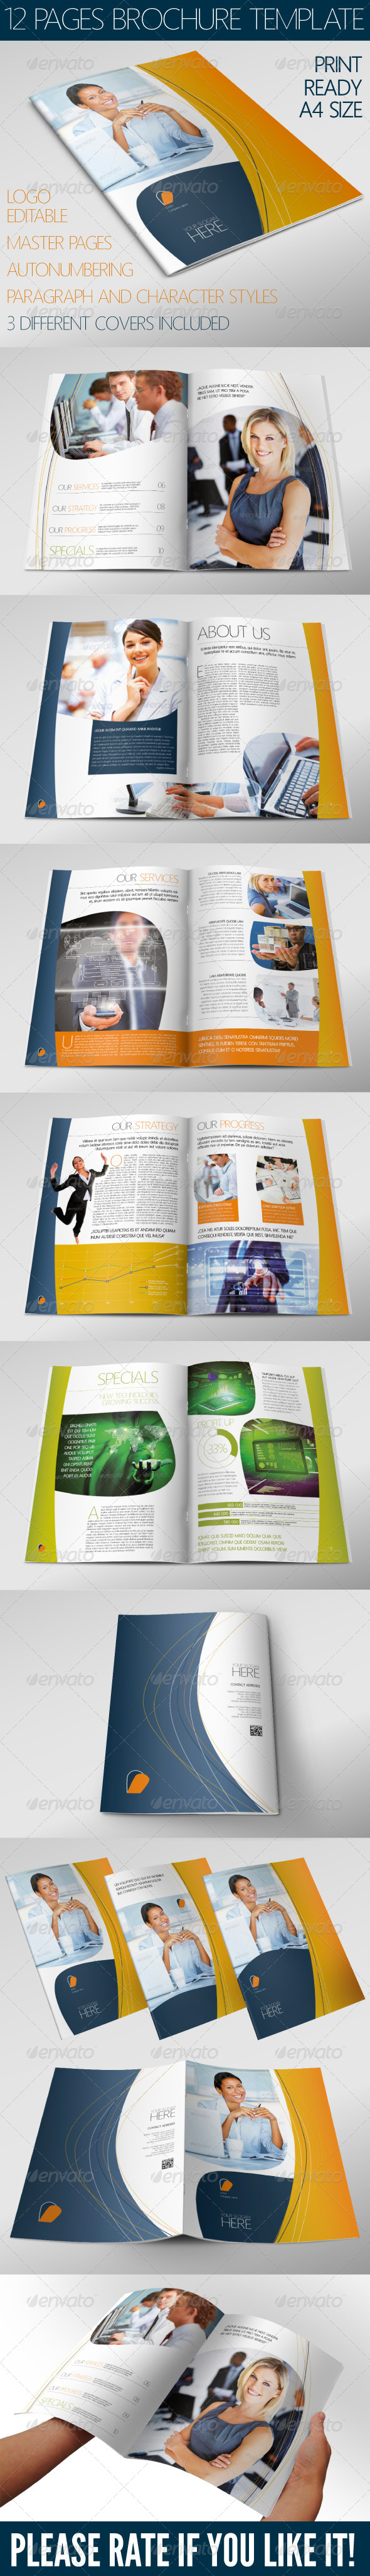 Corporate Brochure 12 Pages A4 - Print Templates